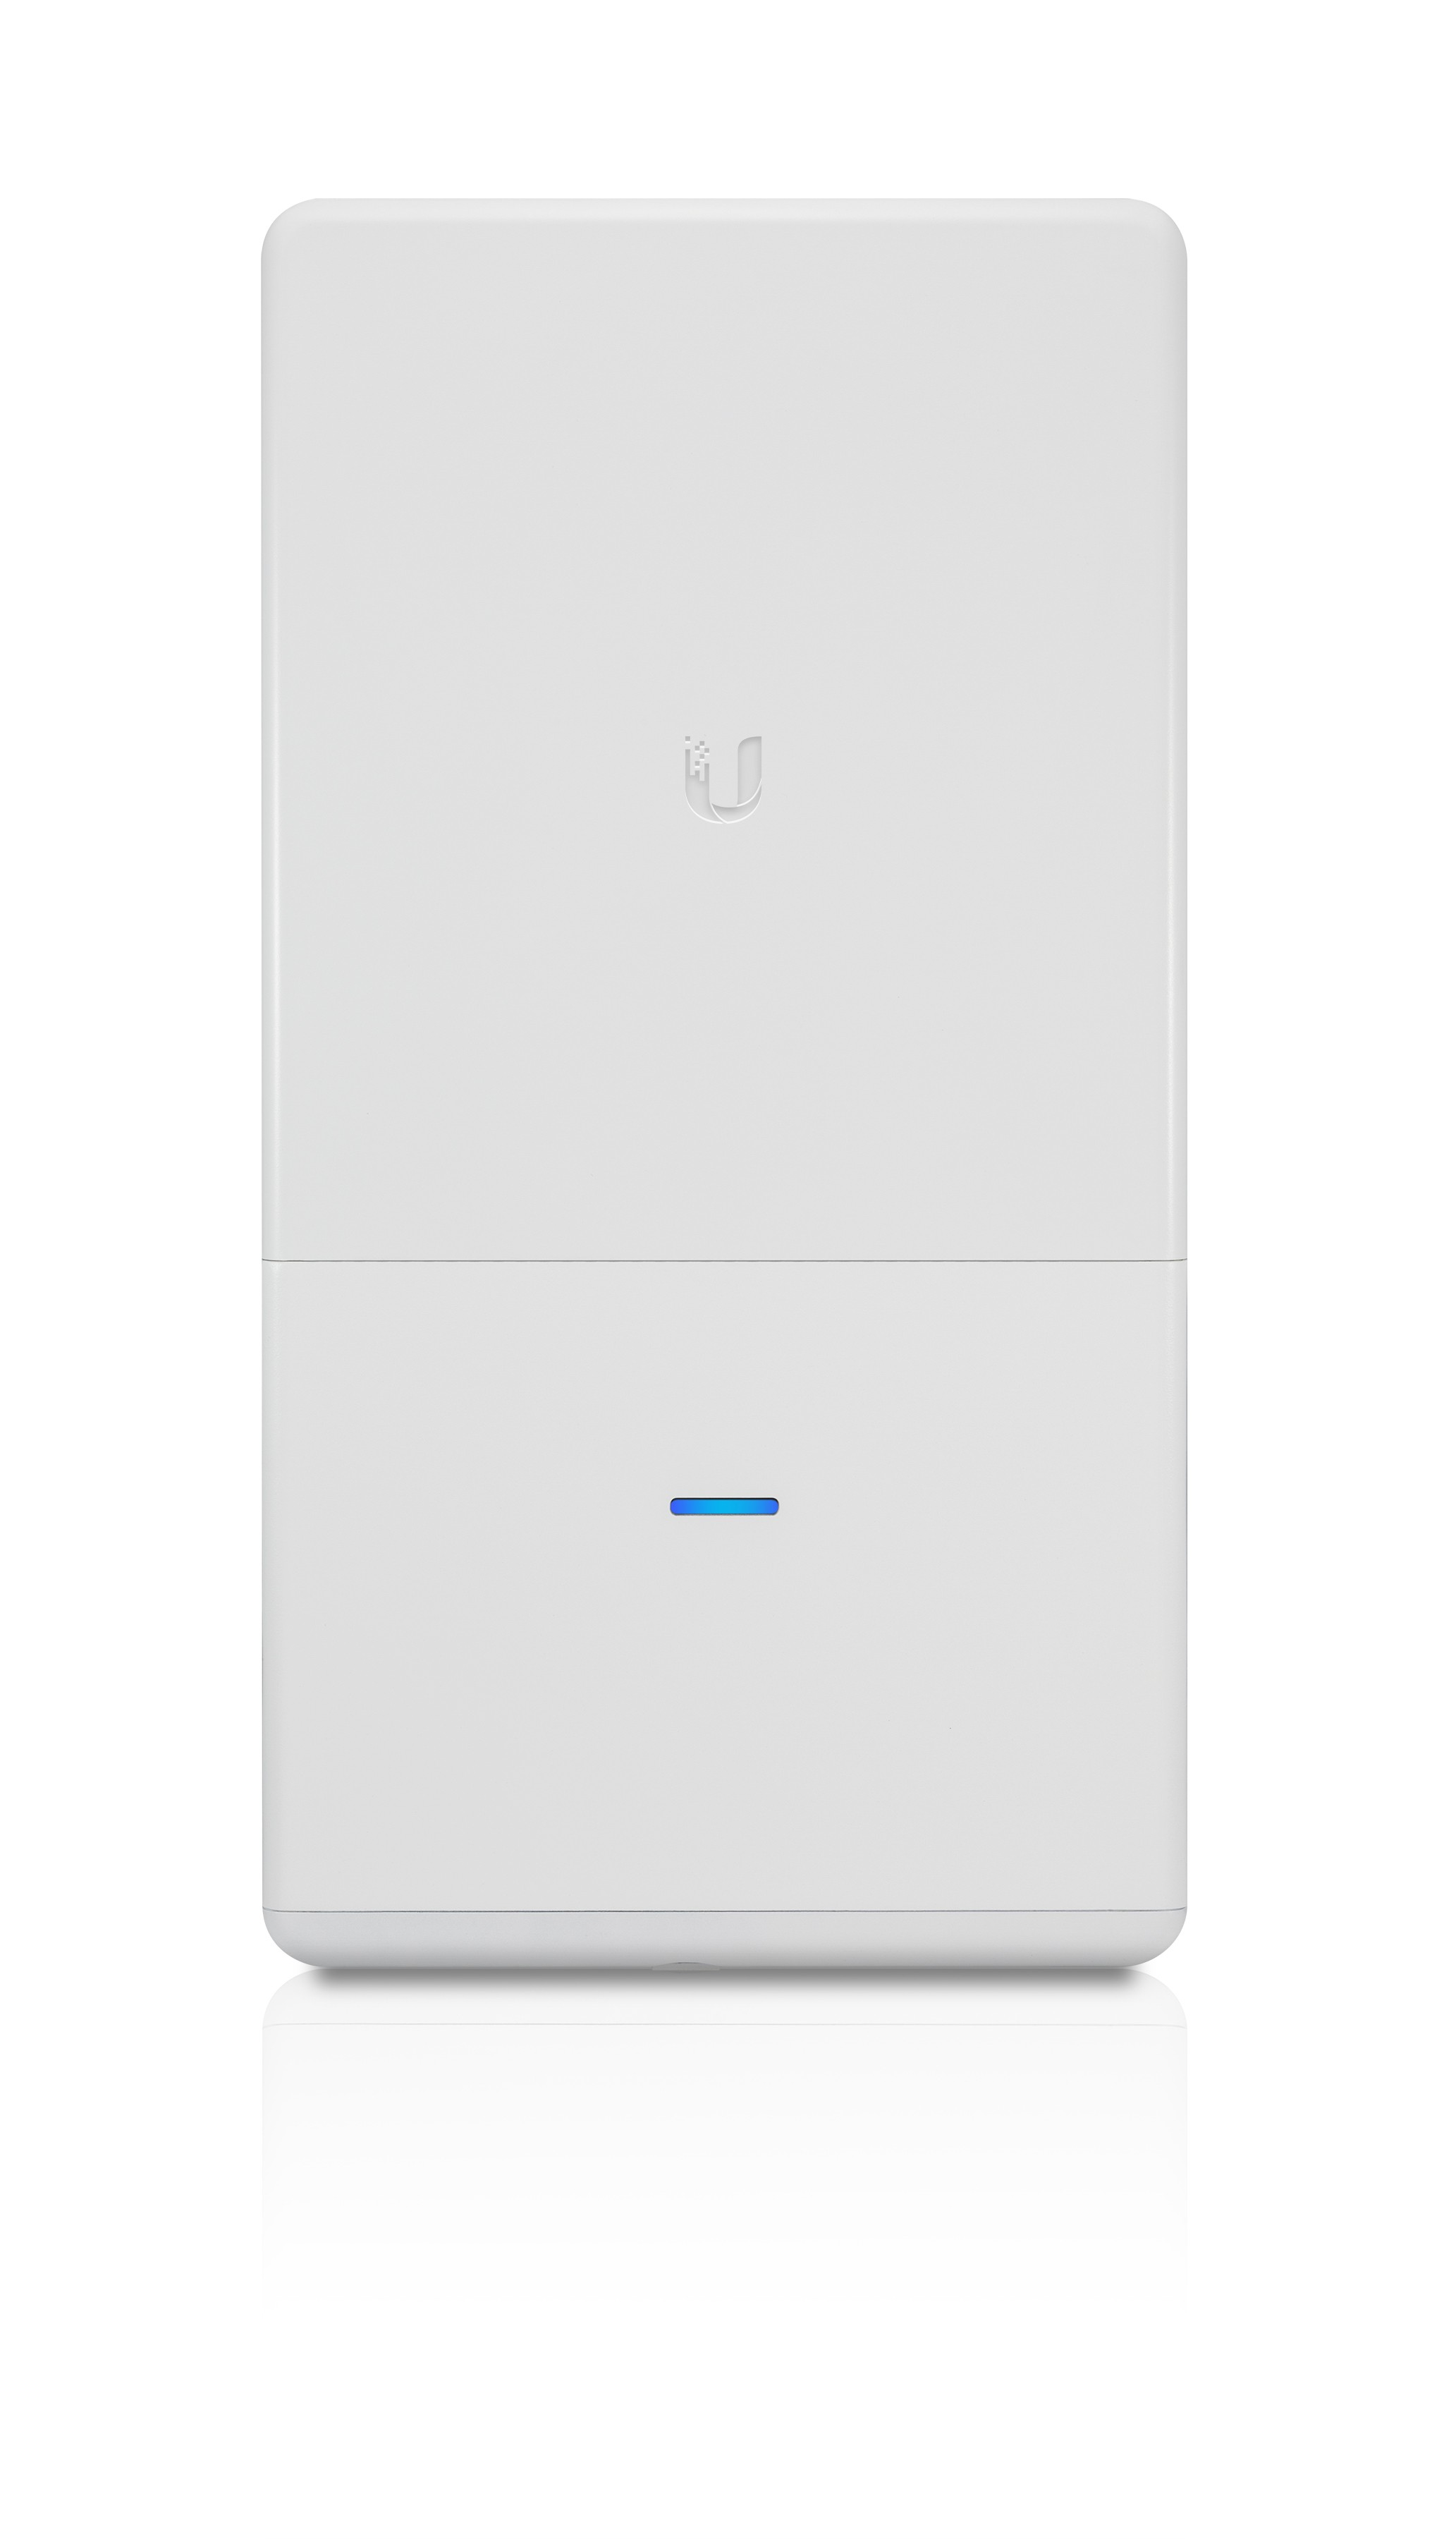 Ubiquiti UniFi UAP Outdoor AC Scalable WiFi Access Point